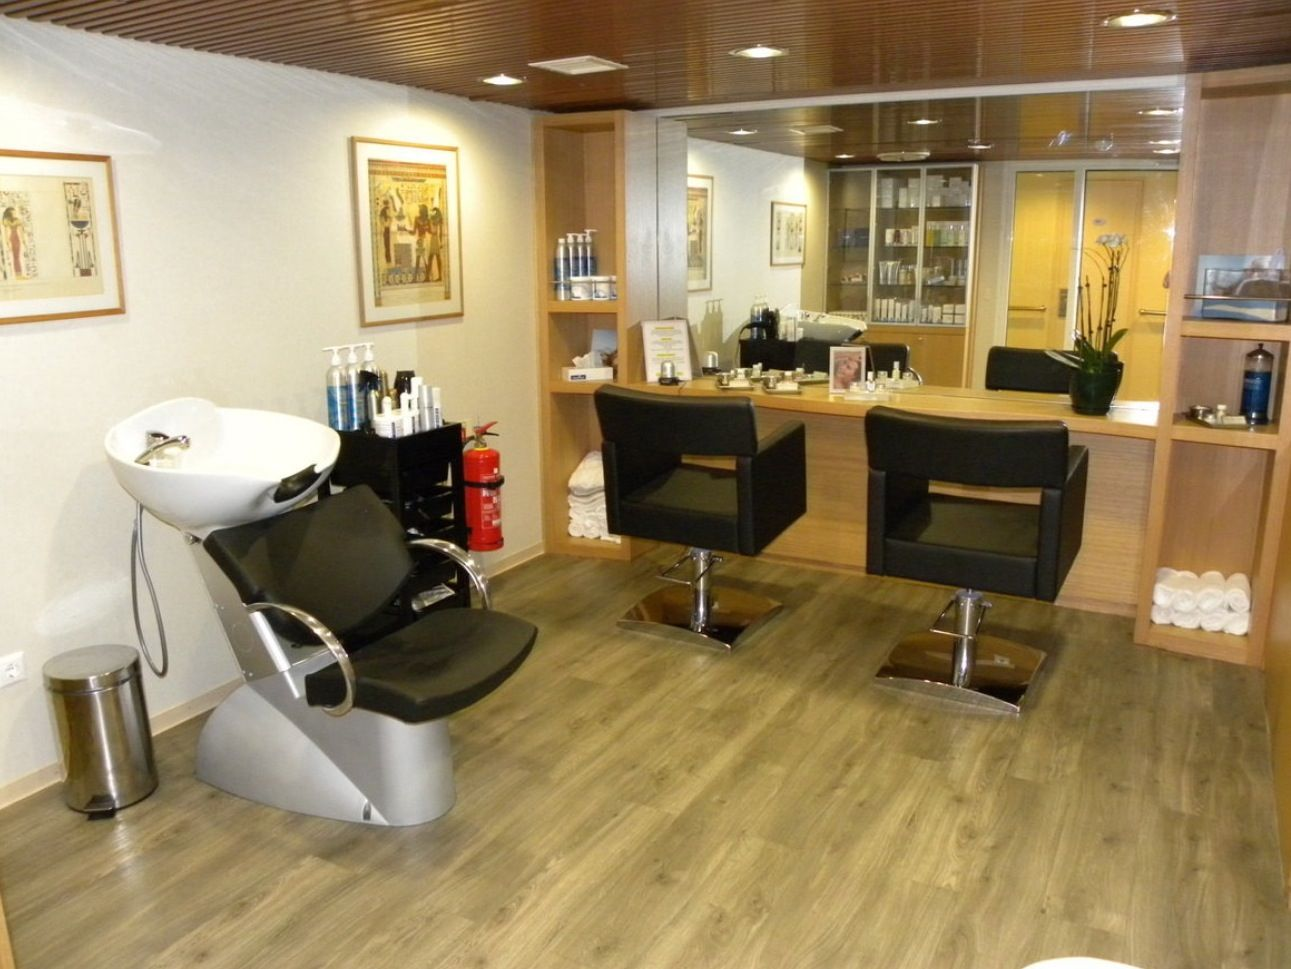 Small salon perfect want want want just for me for How to make a beauty salon at home